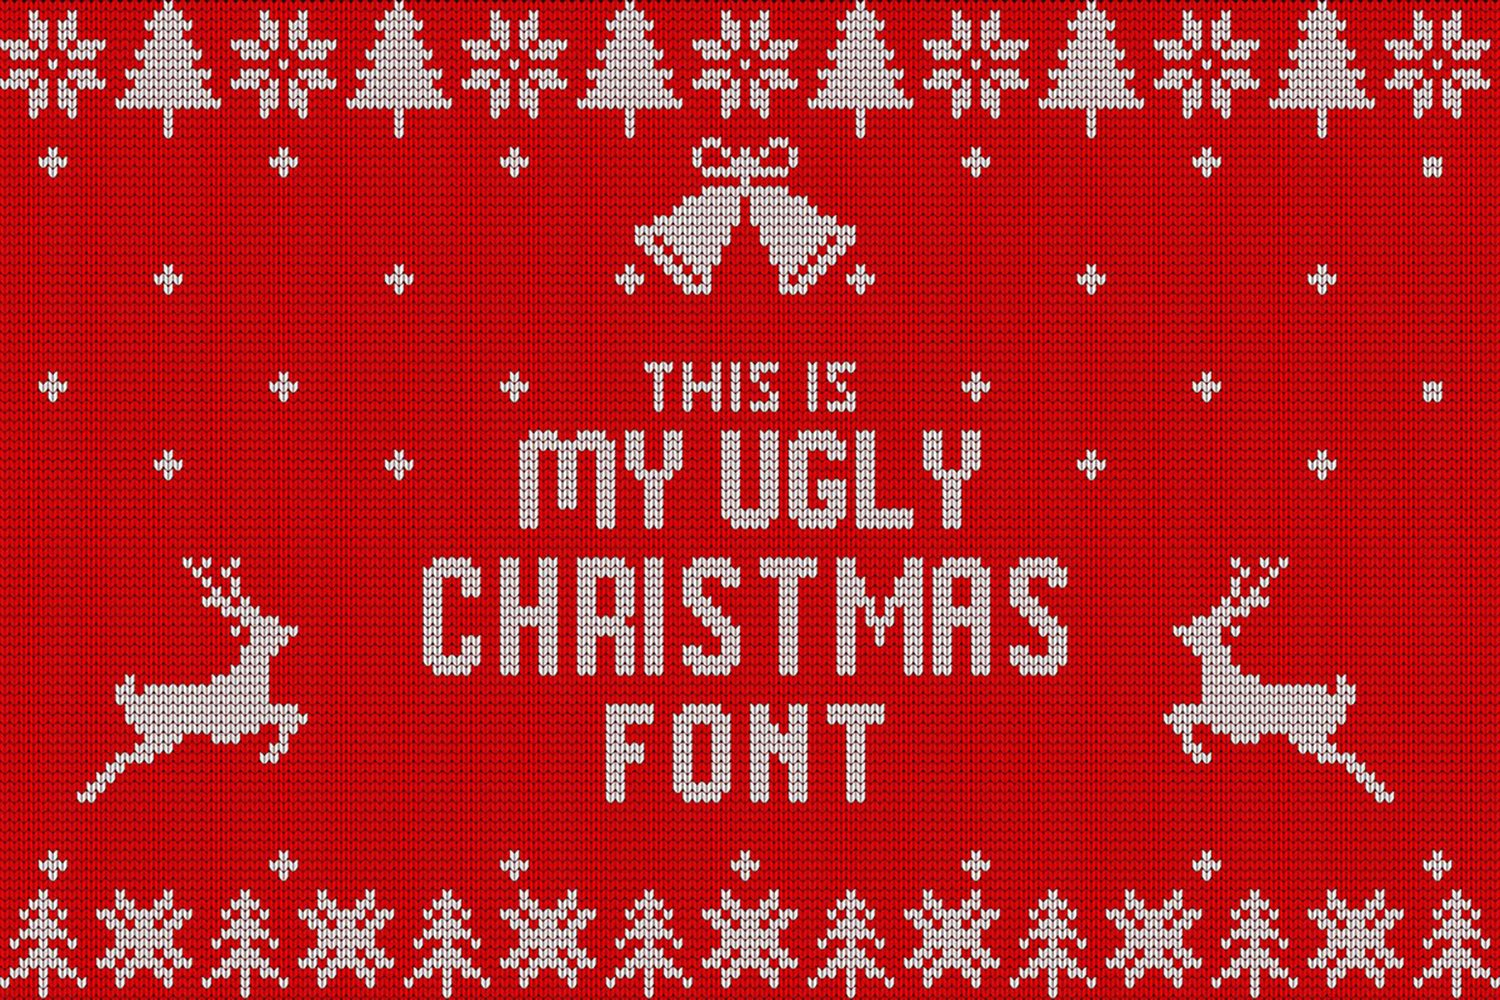 Christmas Knitted Font example image 1